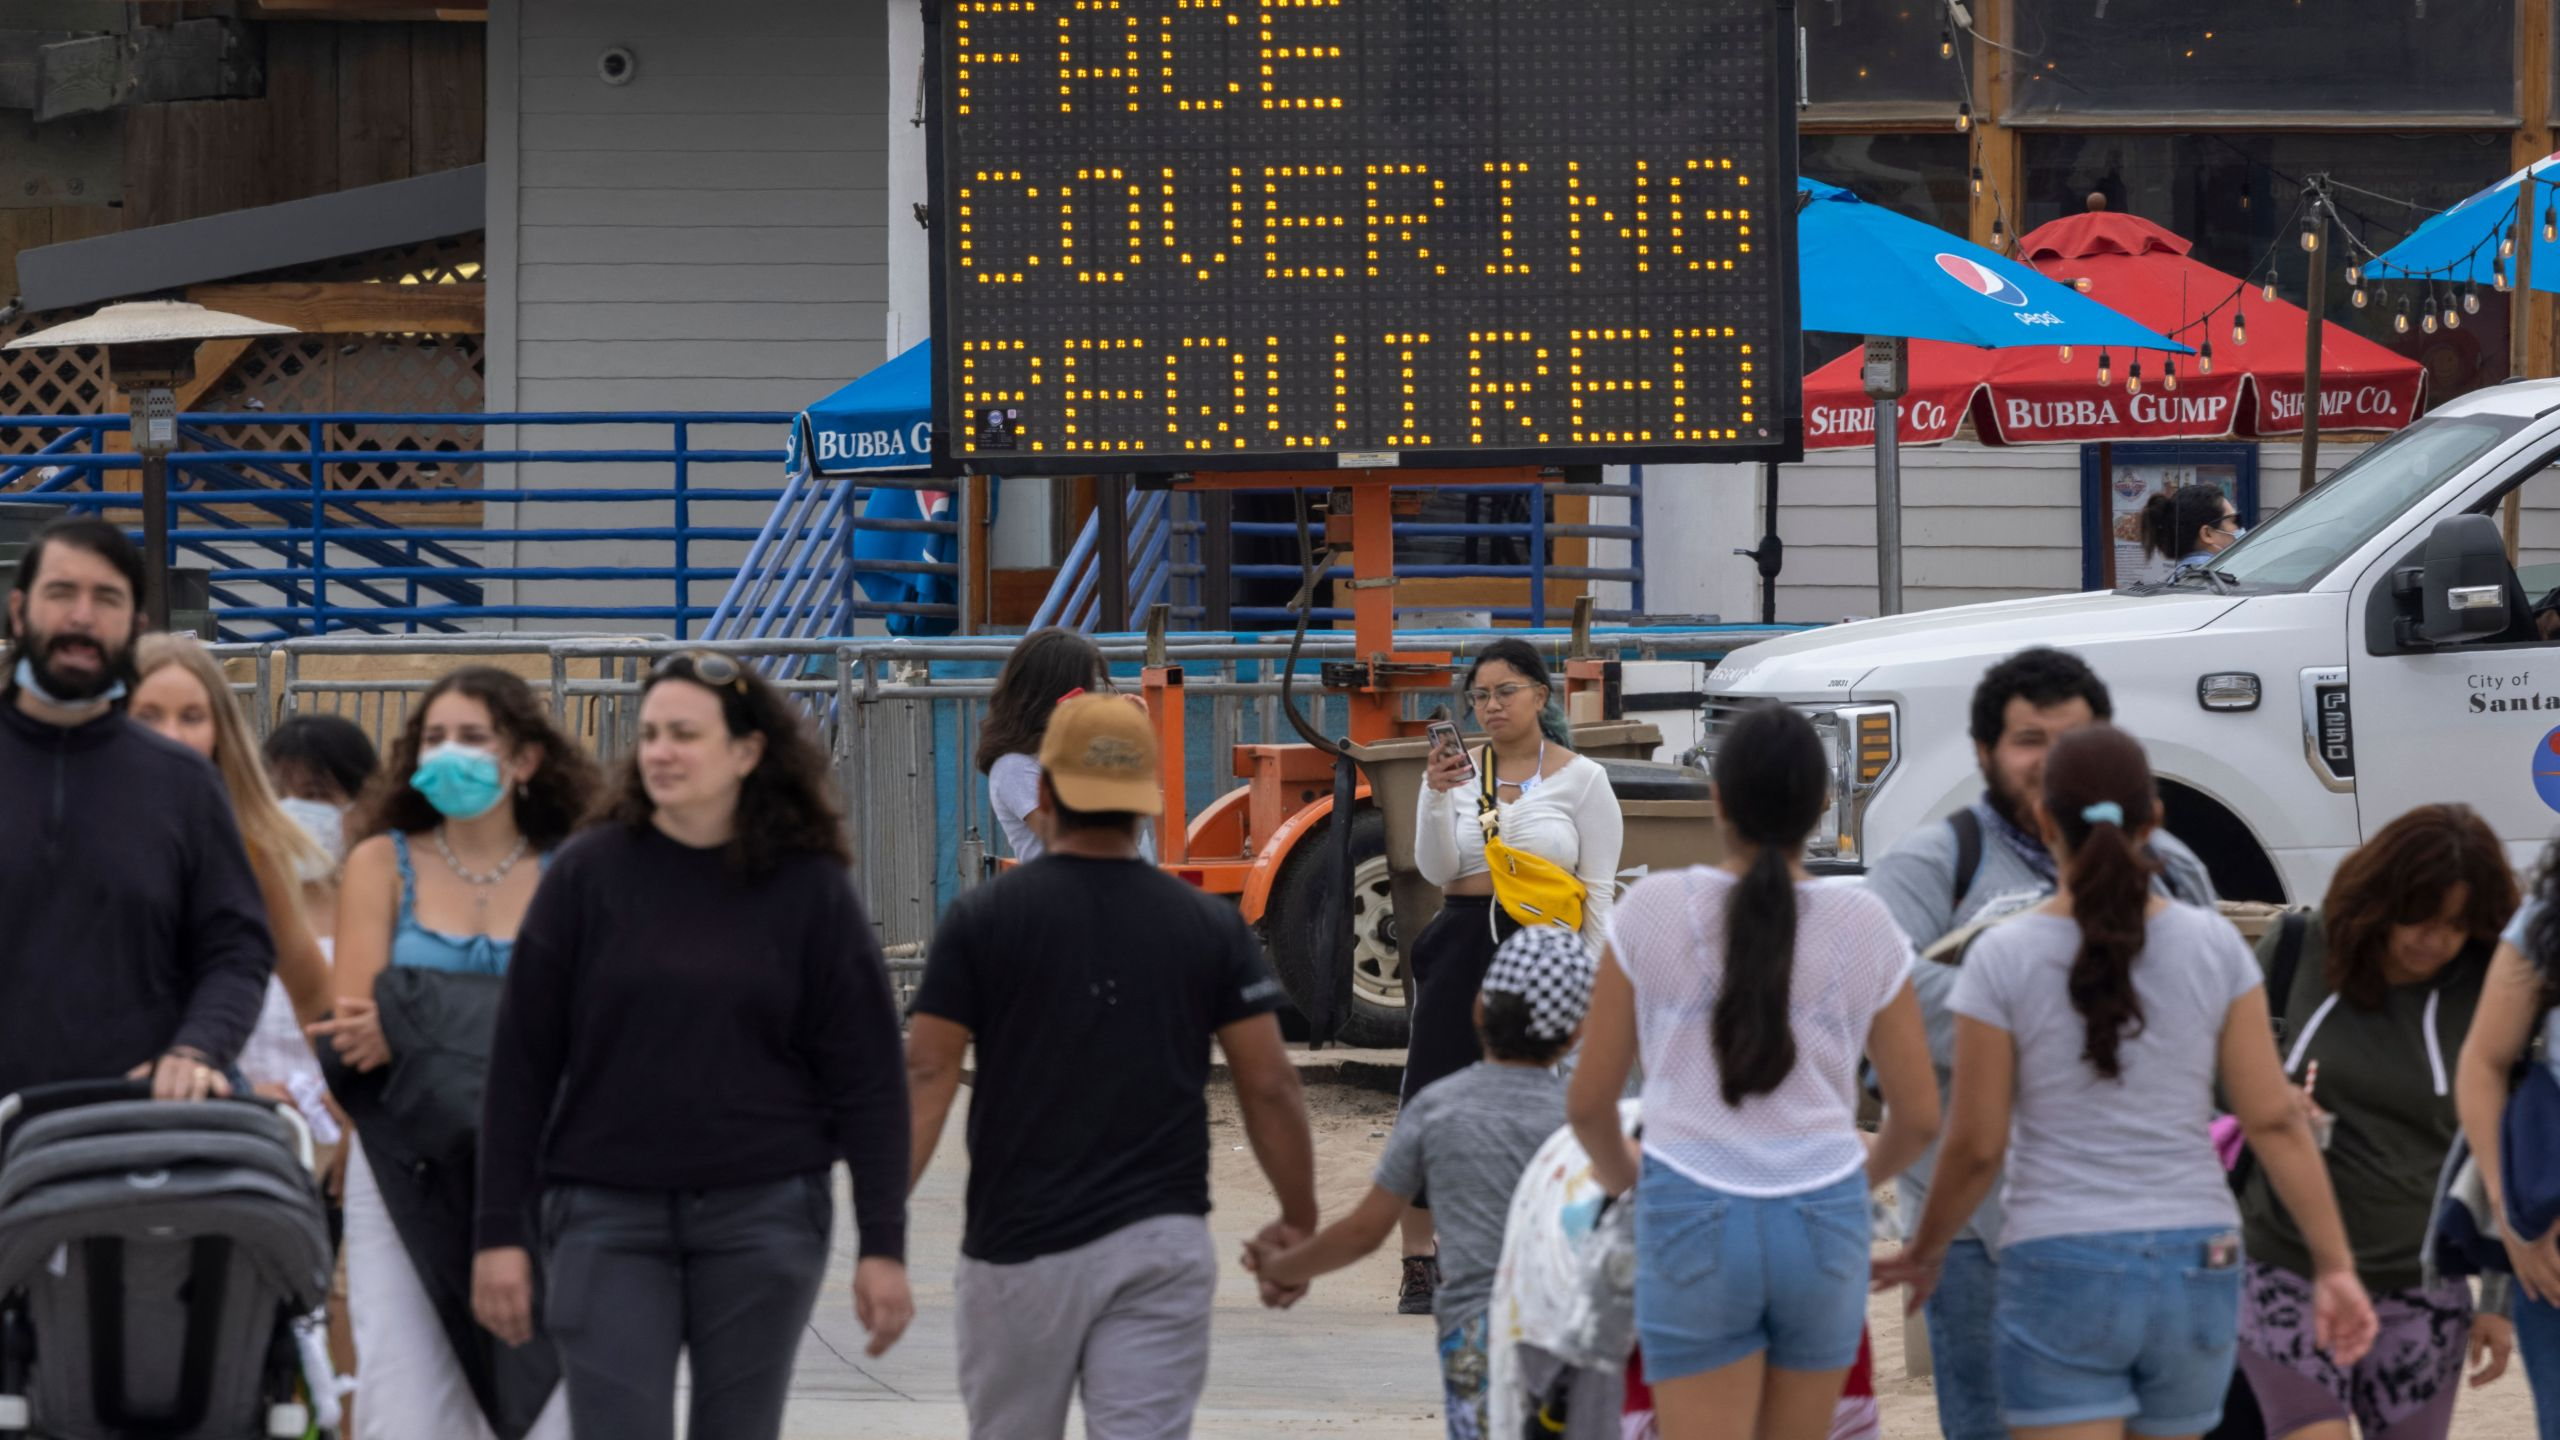 People walk near the Santa Monica Pier as crowds gather on Memorial Day as shutdowns are relaxed more than a year after Covid-19 pandemic shutdowns began, in Santa Monica, California on May 31, 2021. (David McNew/AFP via Getty Images)